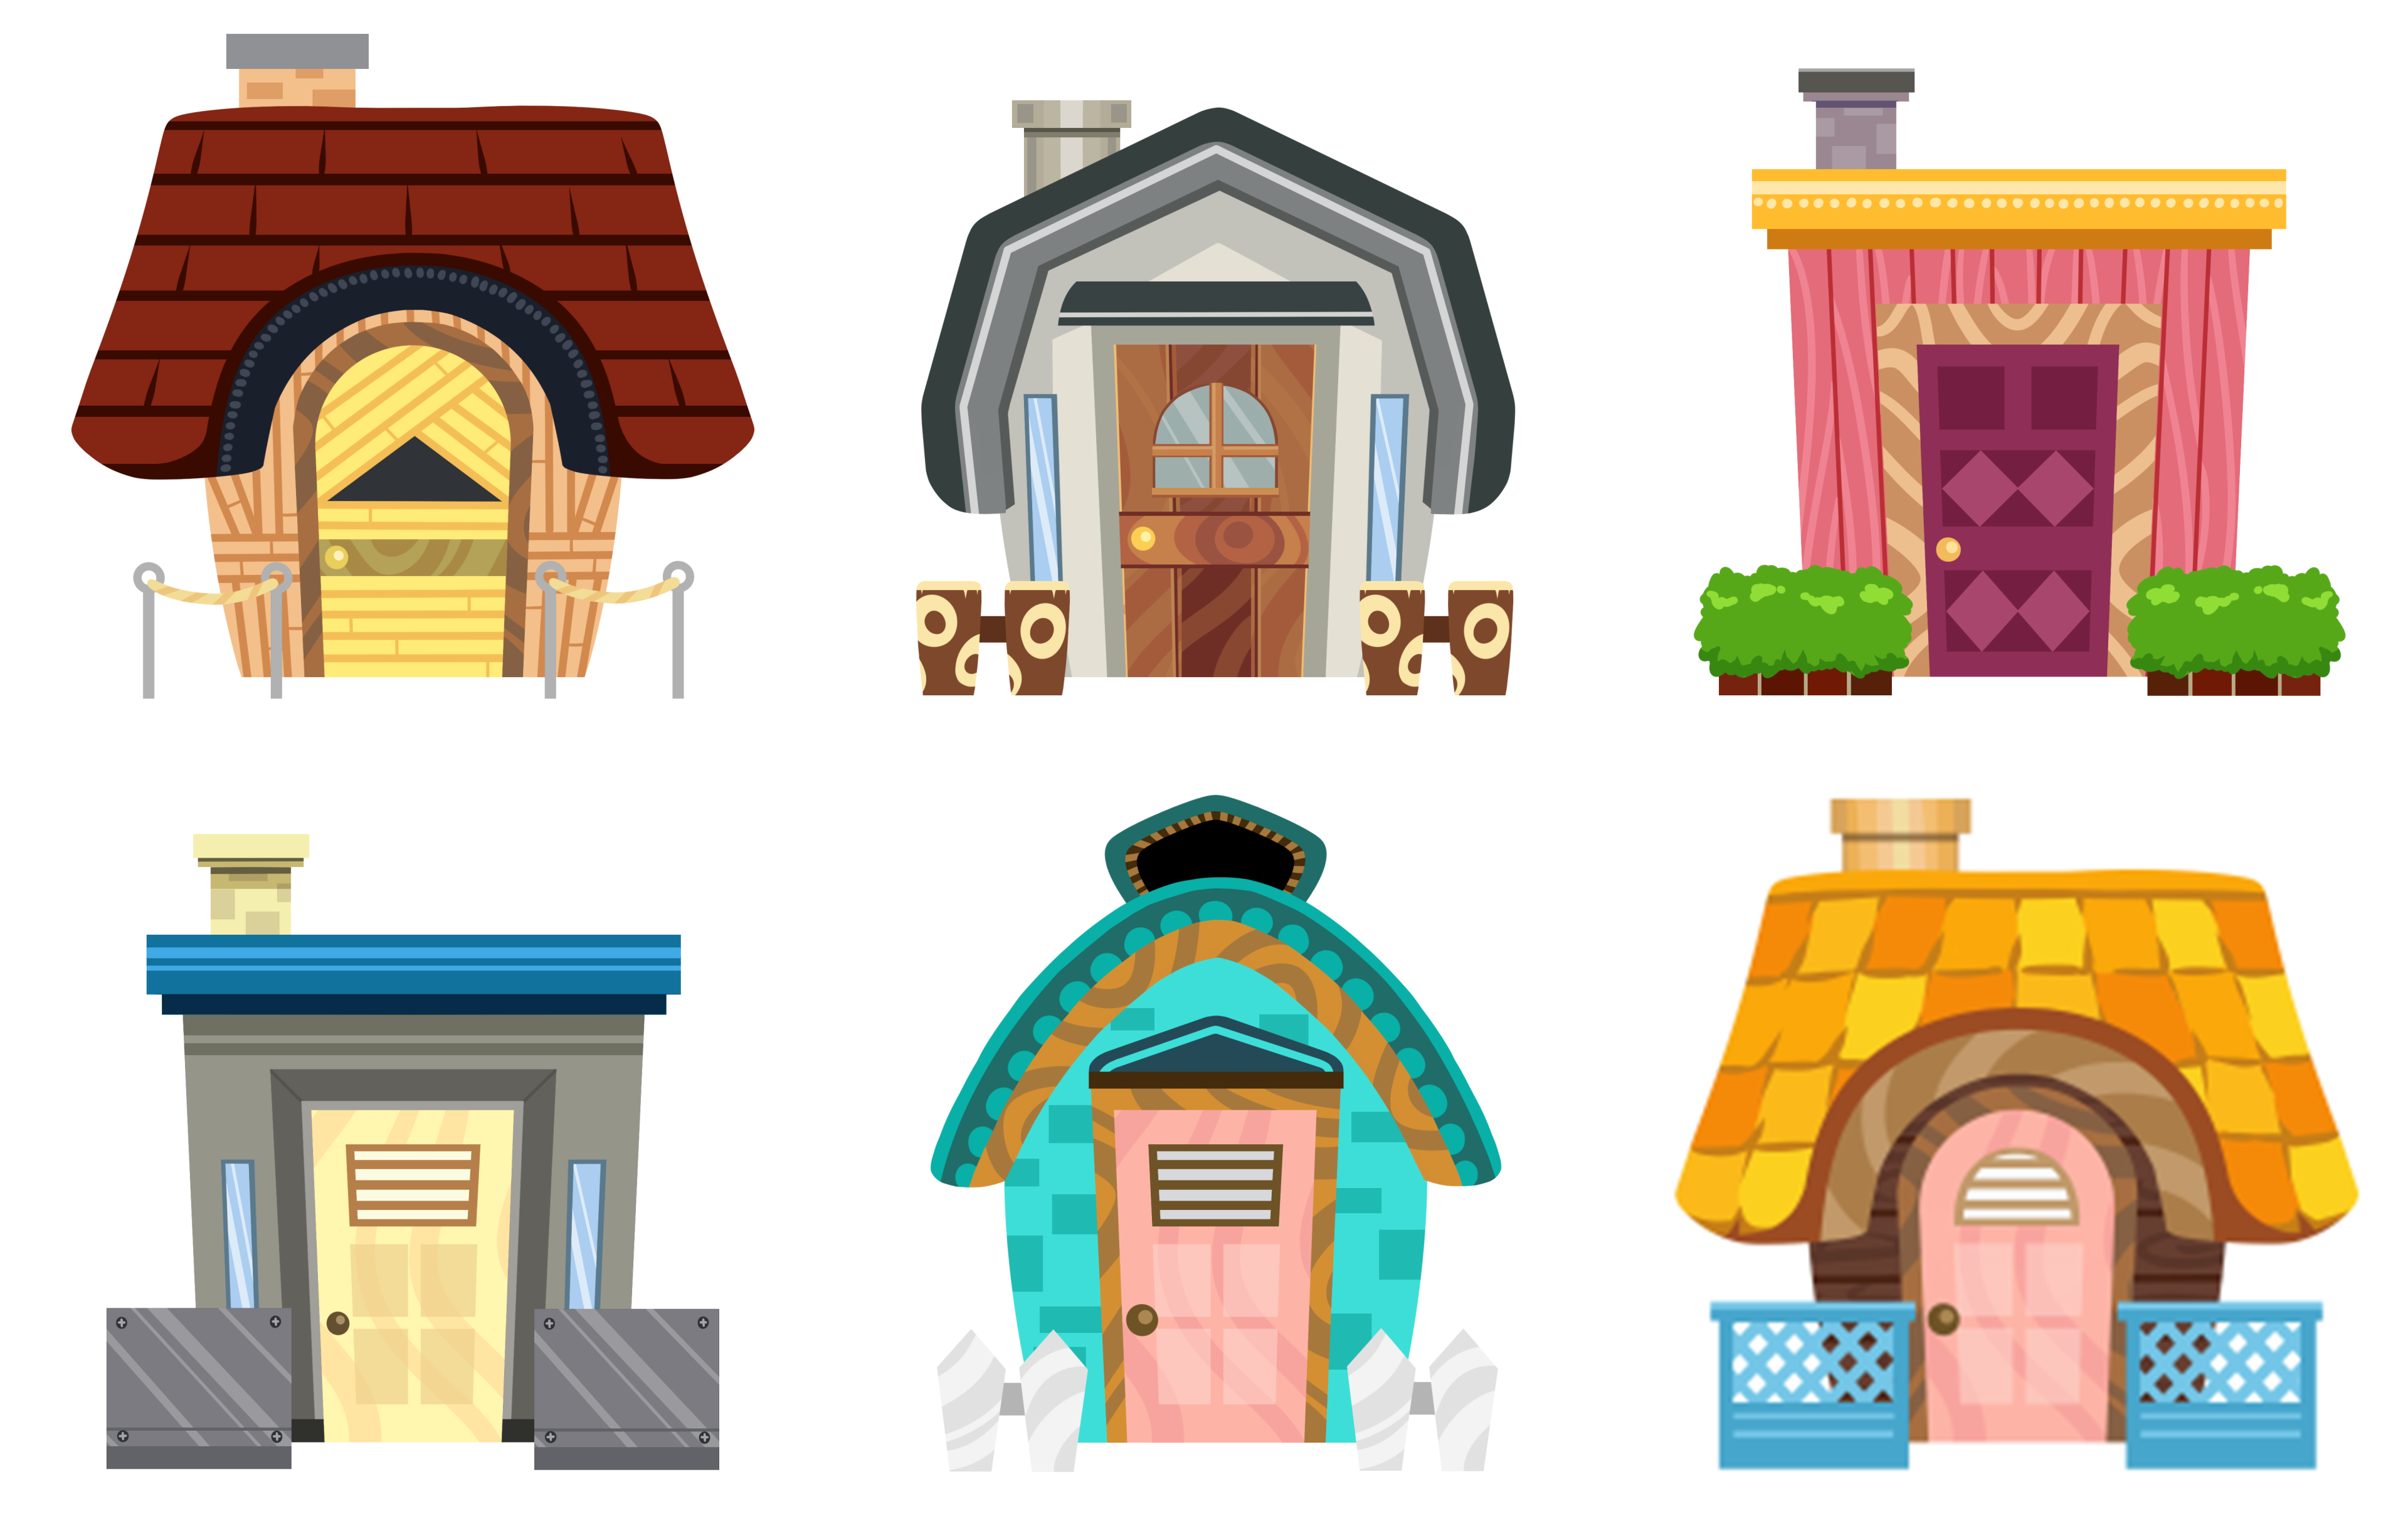 Animal Crossing Villager Houses! Can You Guess Who Owns